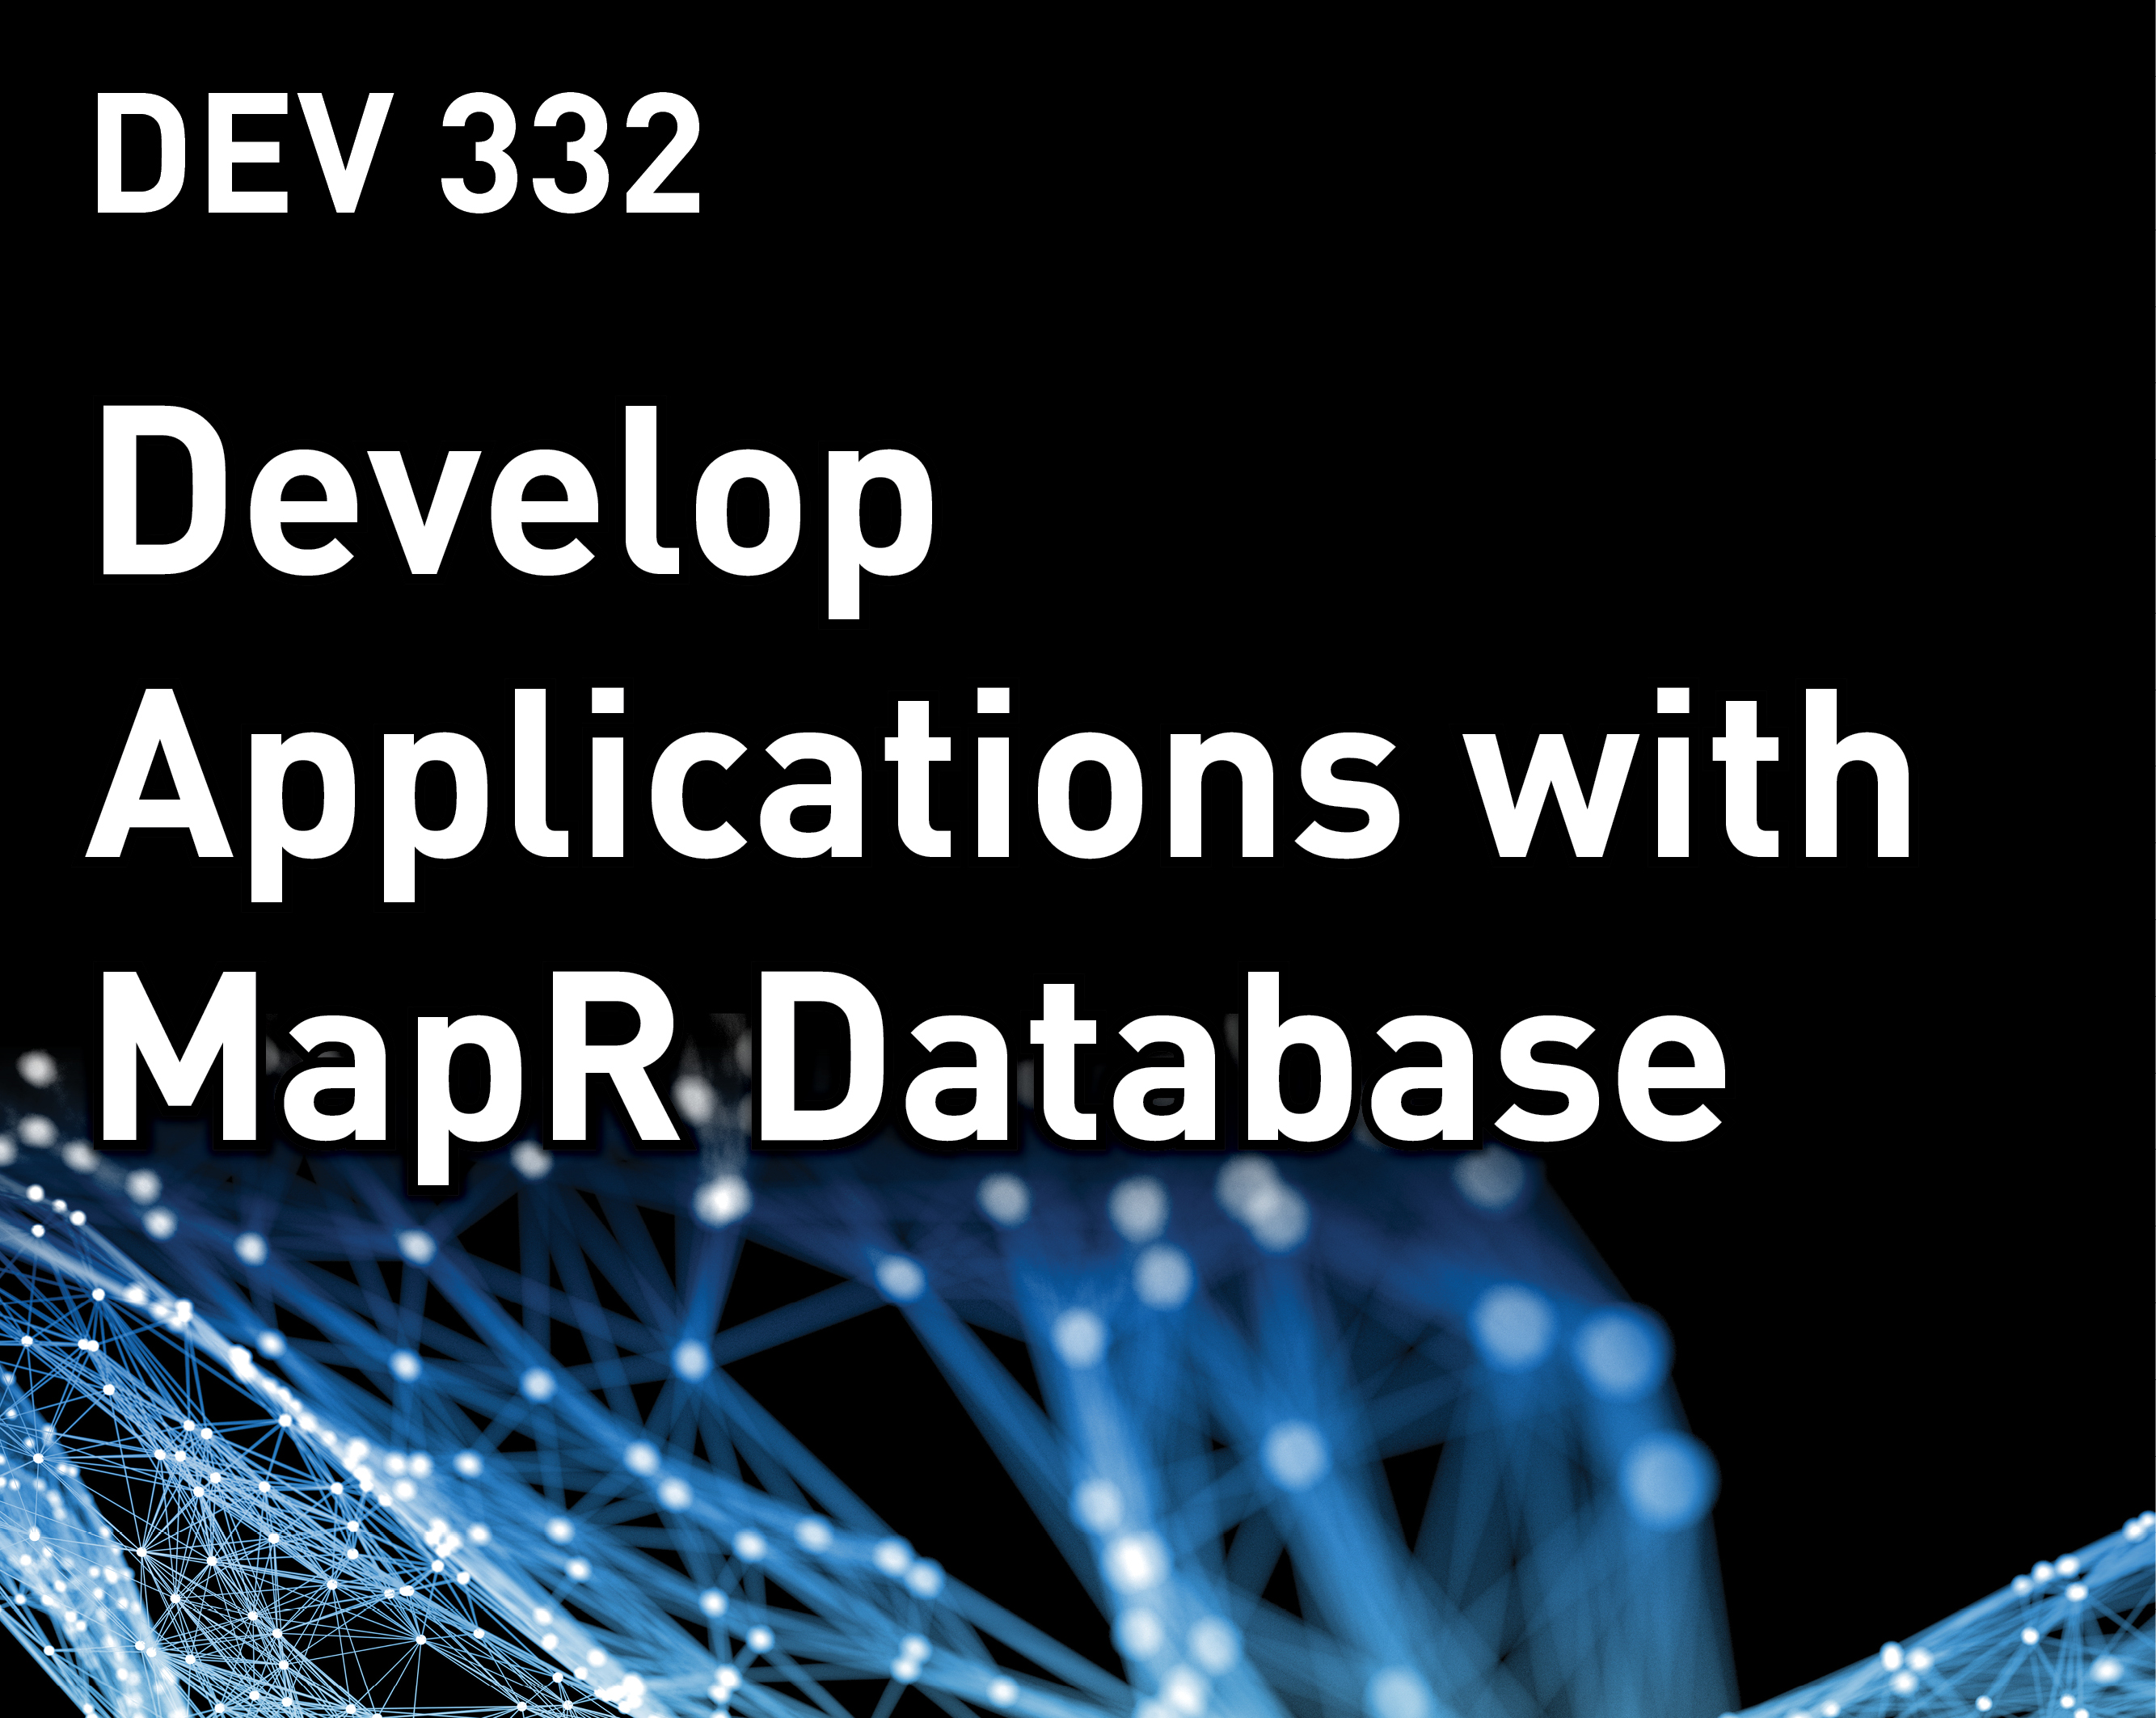 Develop Applications with MapR Database